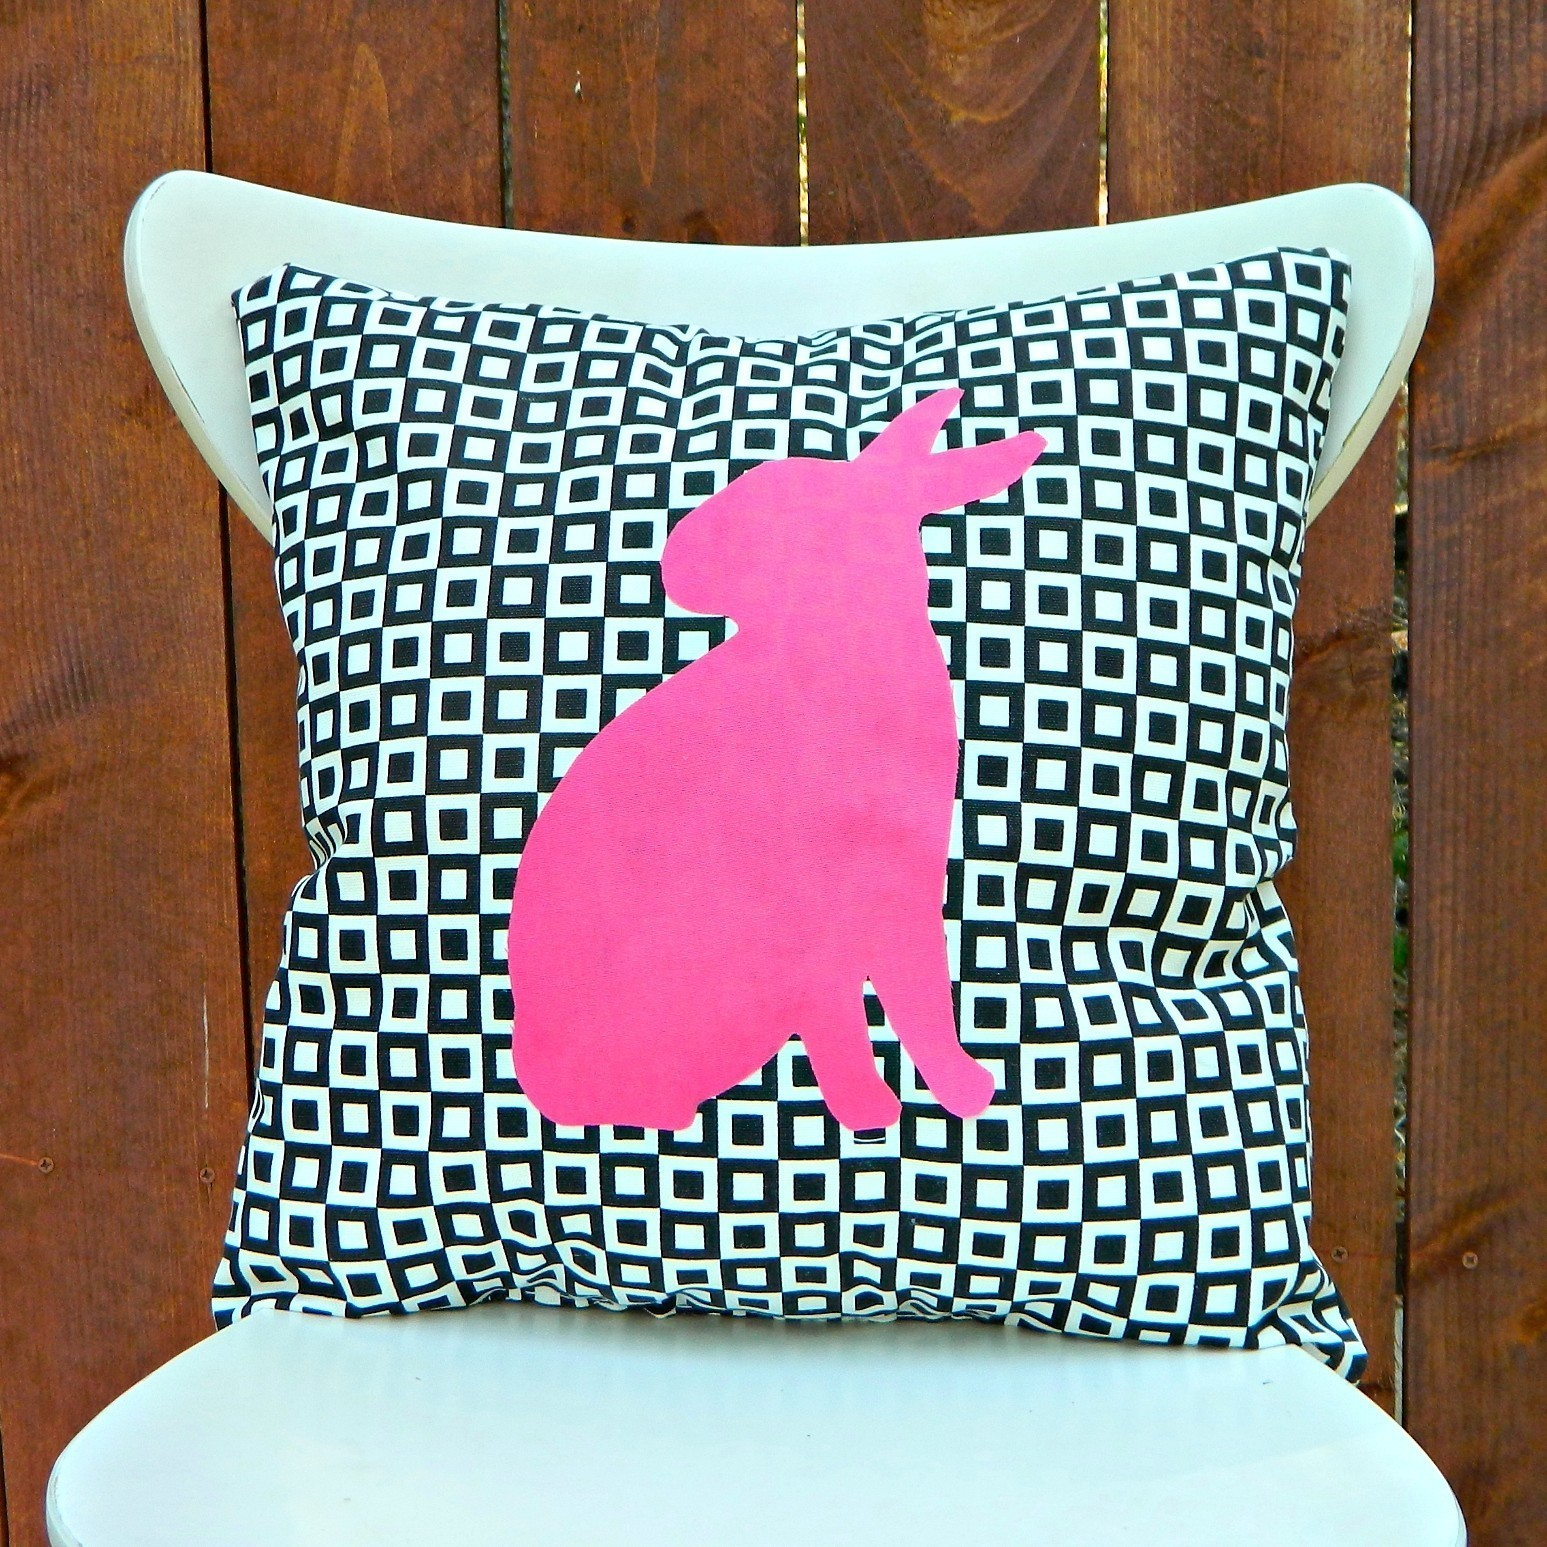 Graphic Animal Silhouette Pillows  How To Sew An Applique